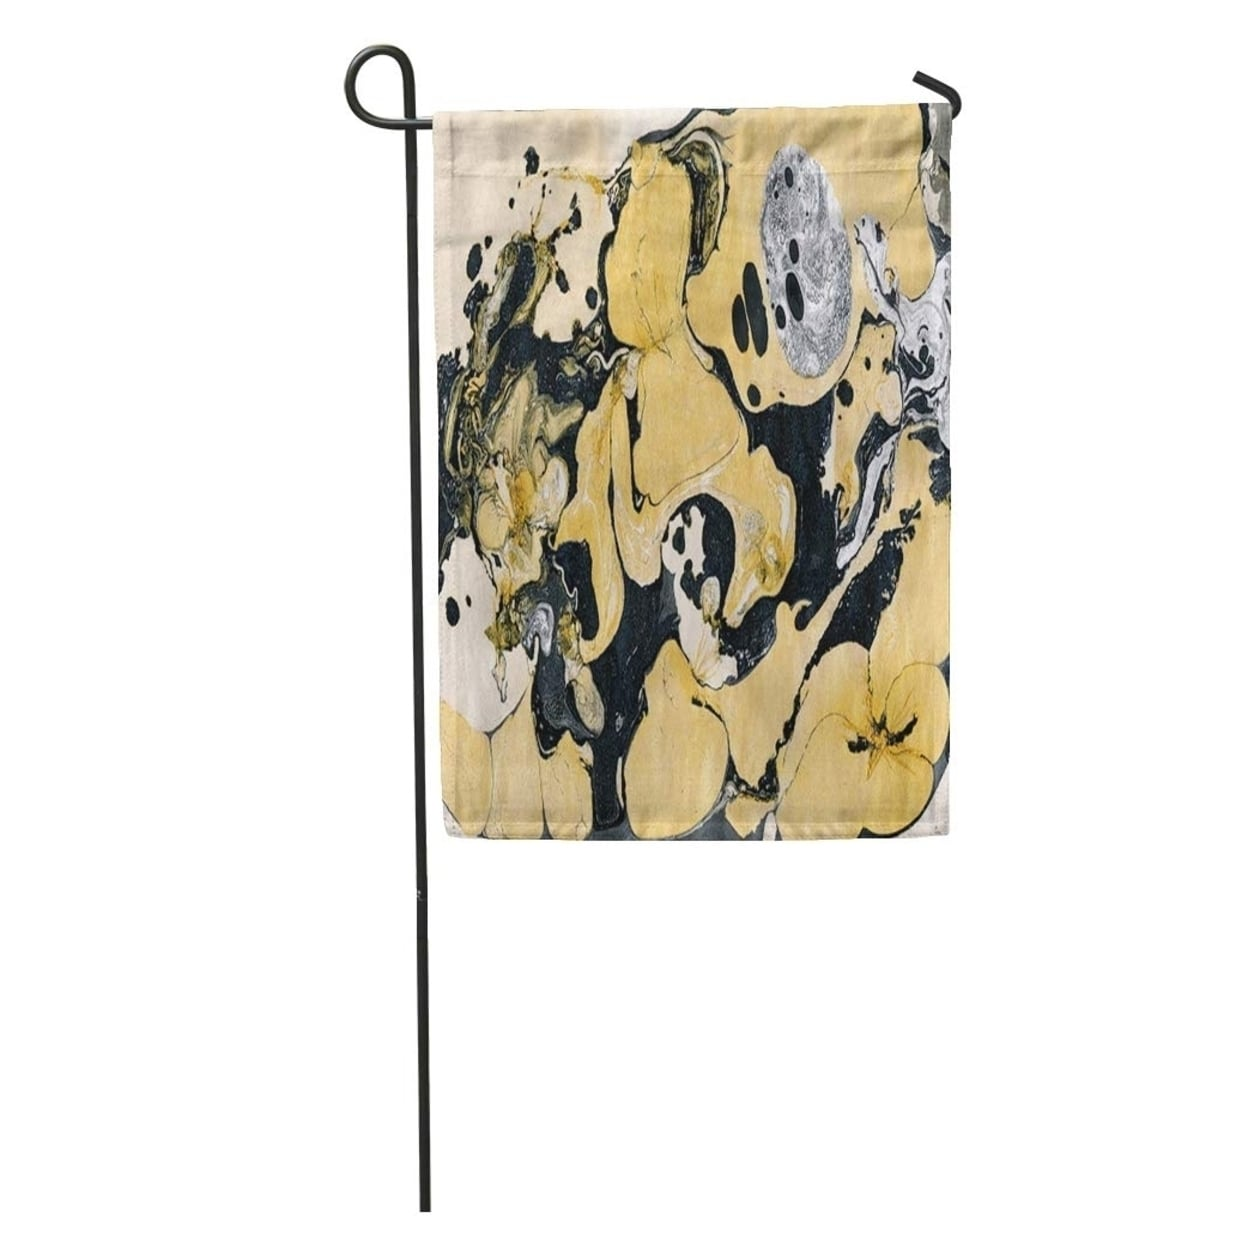 Shop Colorful Gold Golden And Black Marble Ink Abstract Painting Beautiful Gray Mint Garden Flag Decorative Flag House Banner Overstock 31346507